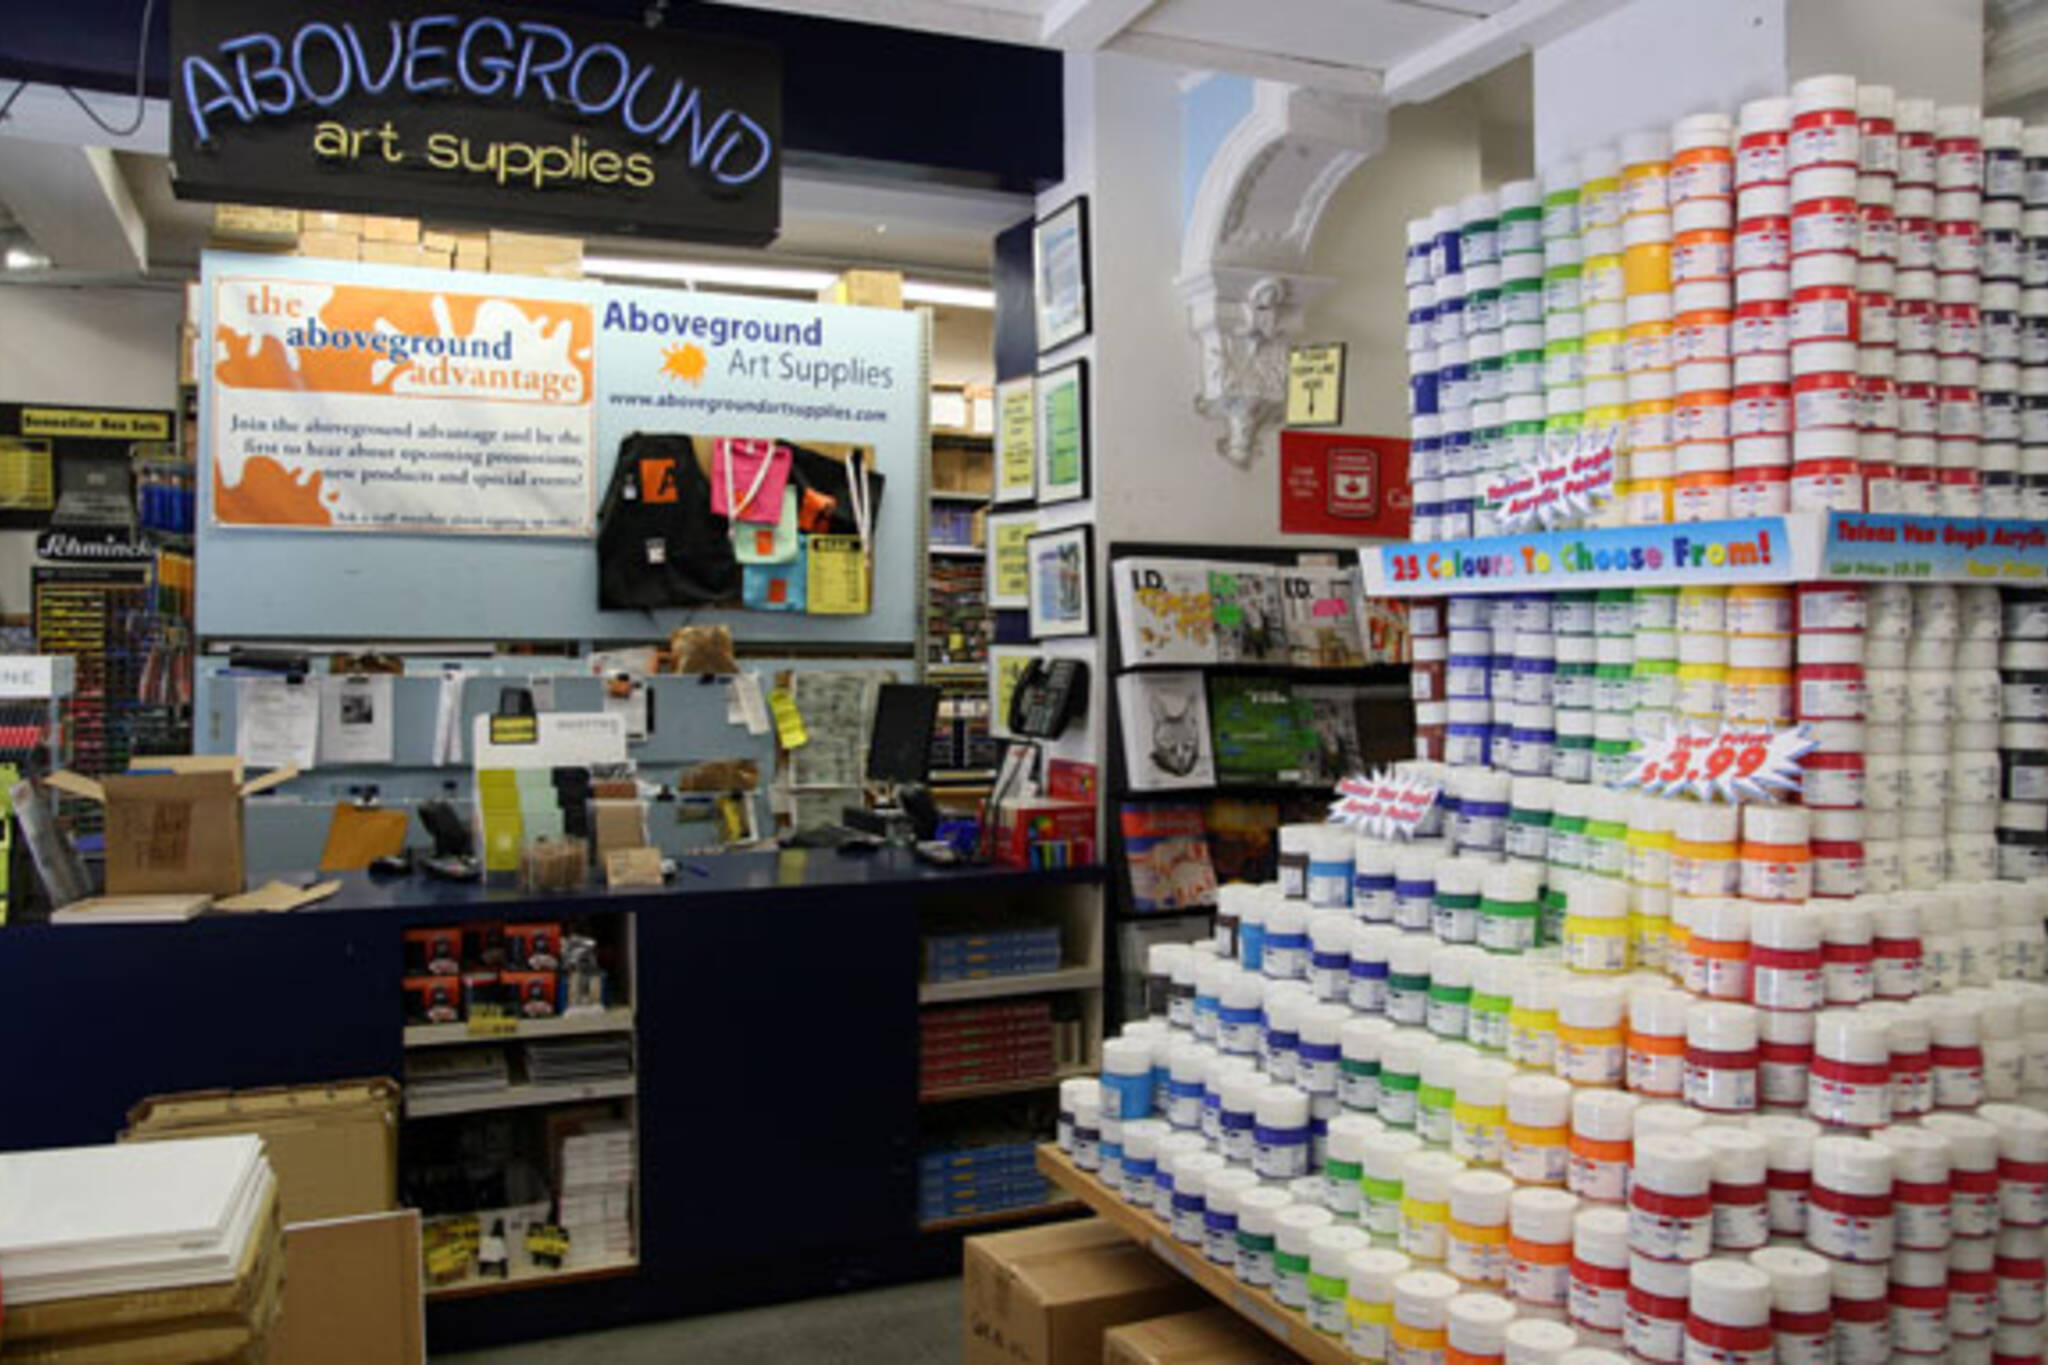 Aboveground Art Supplies